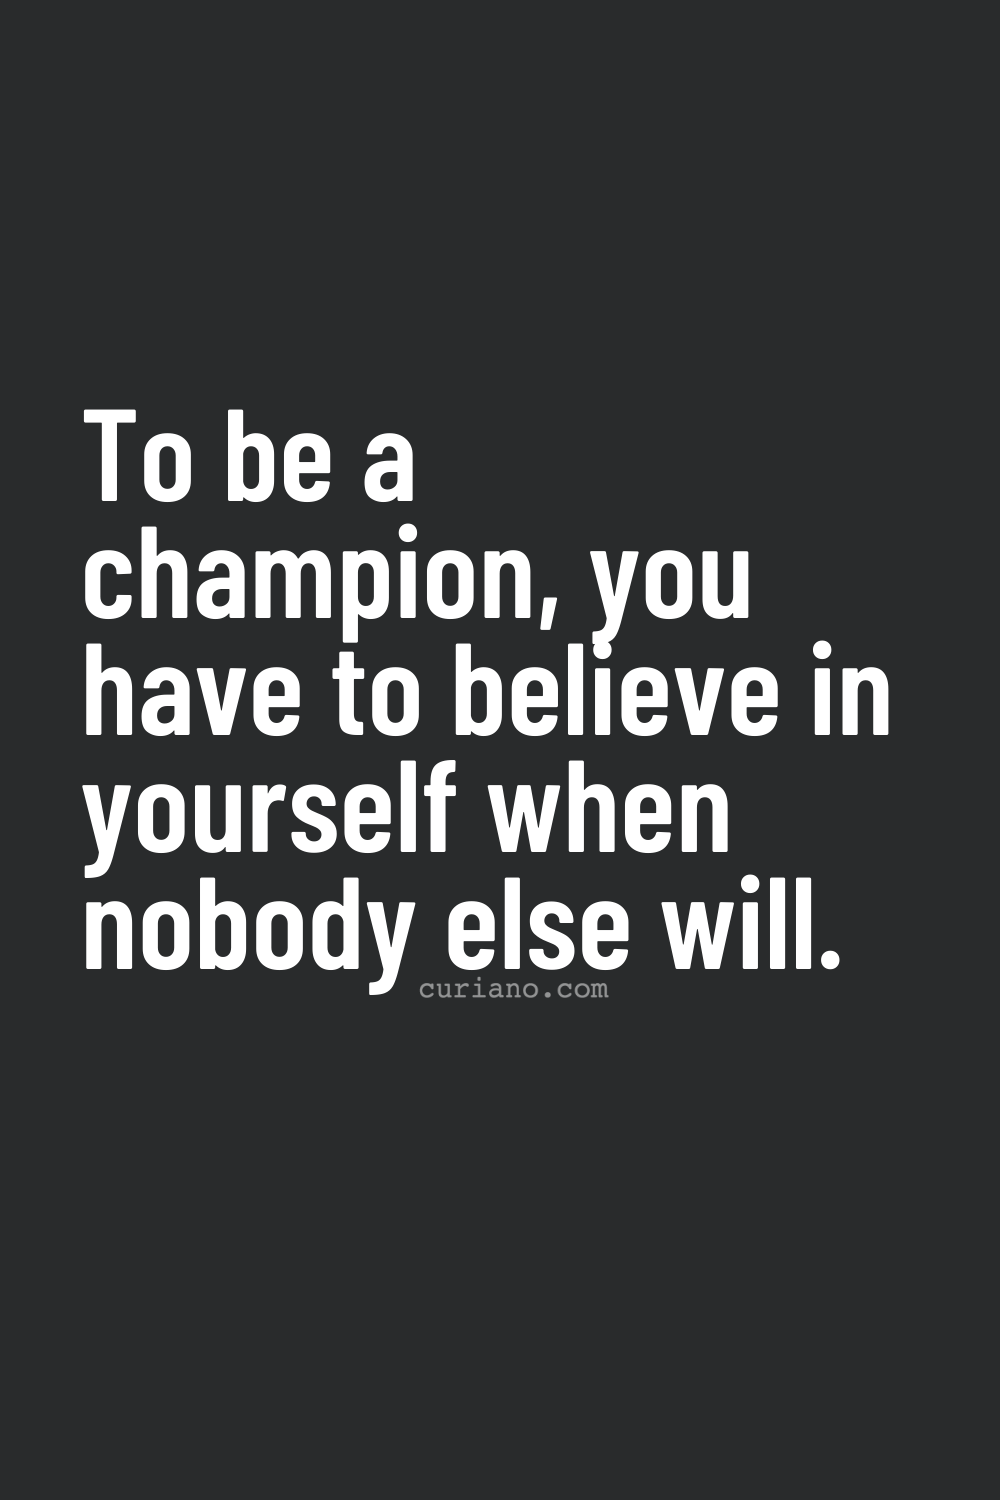 To be a champion, you have to believe in yourself when nobody else will.